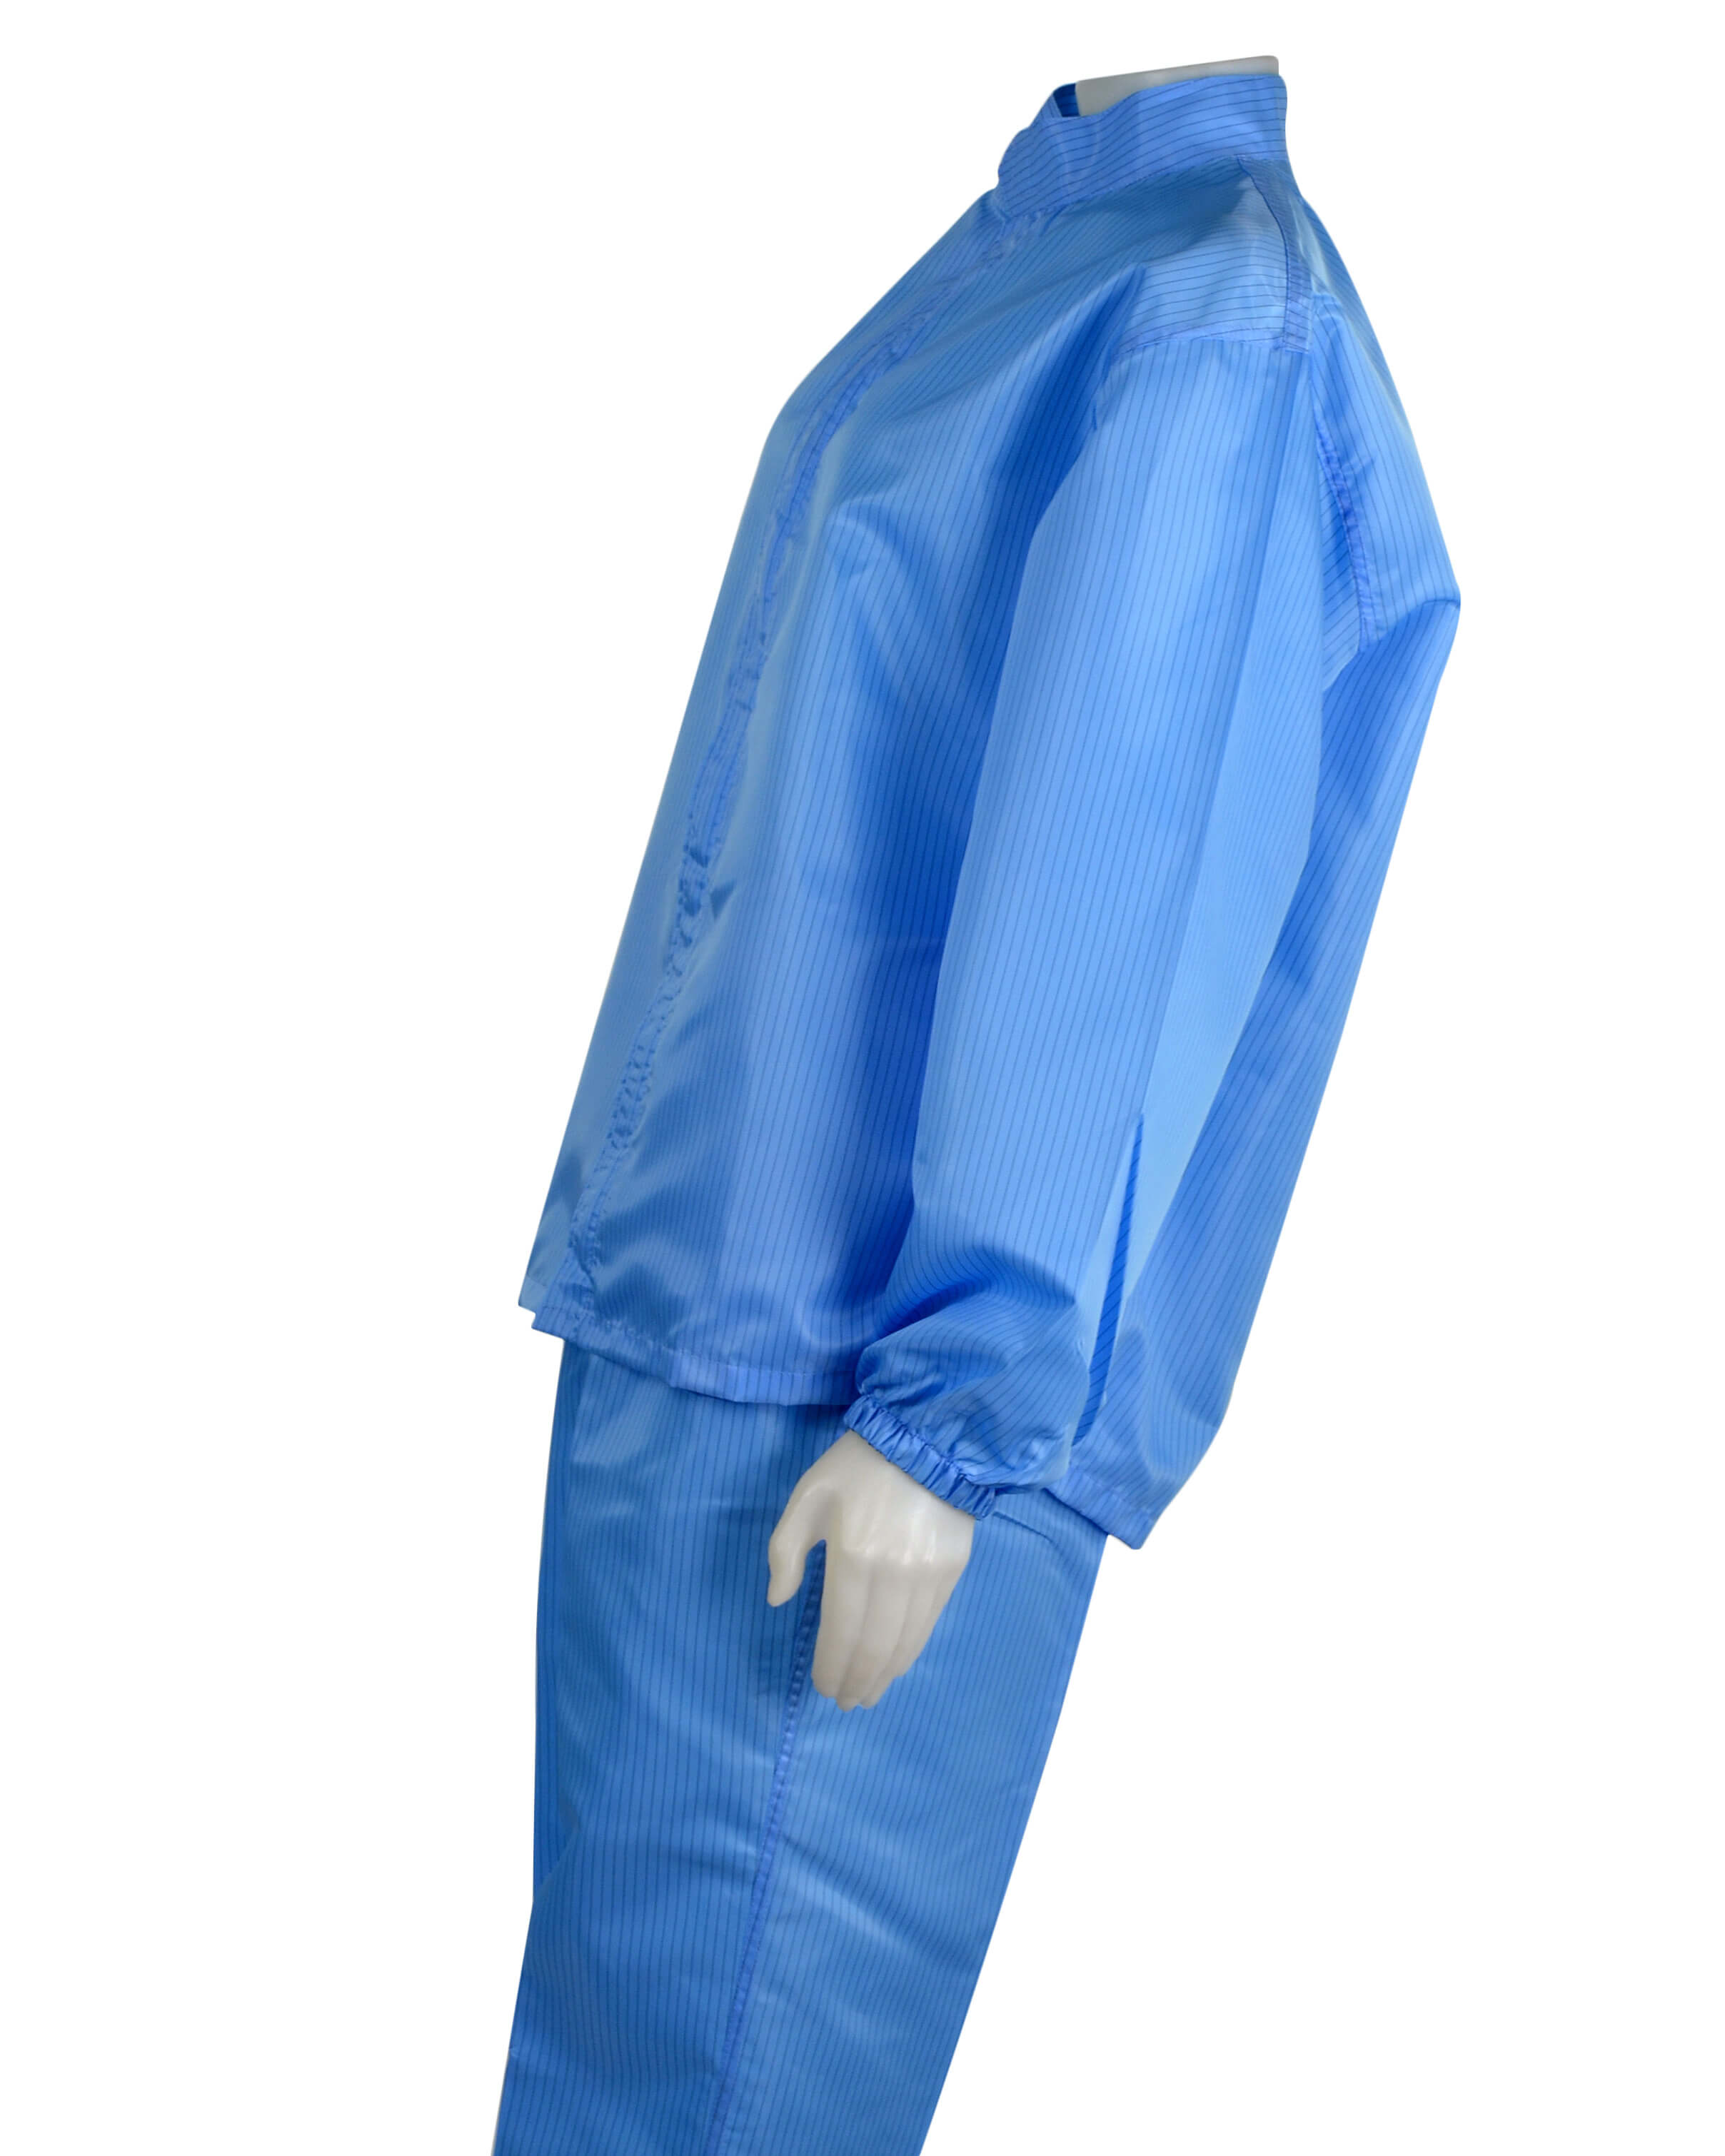 Barrier Suit, 2